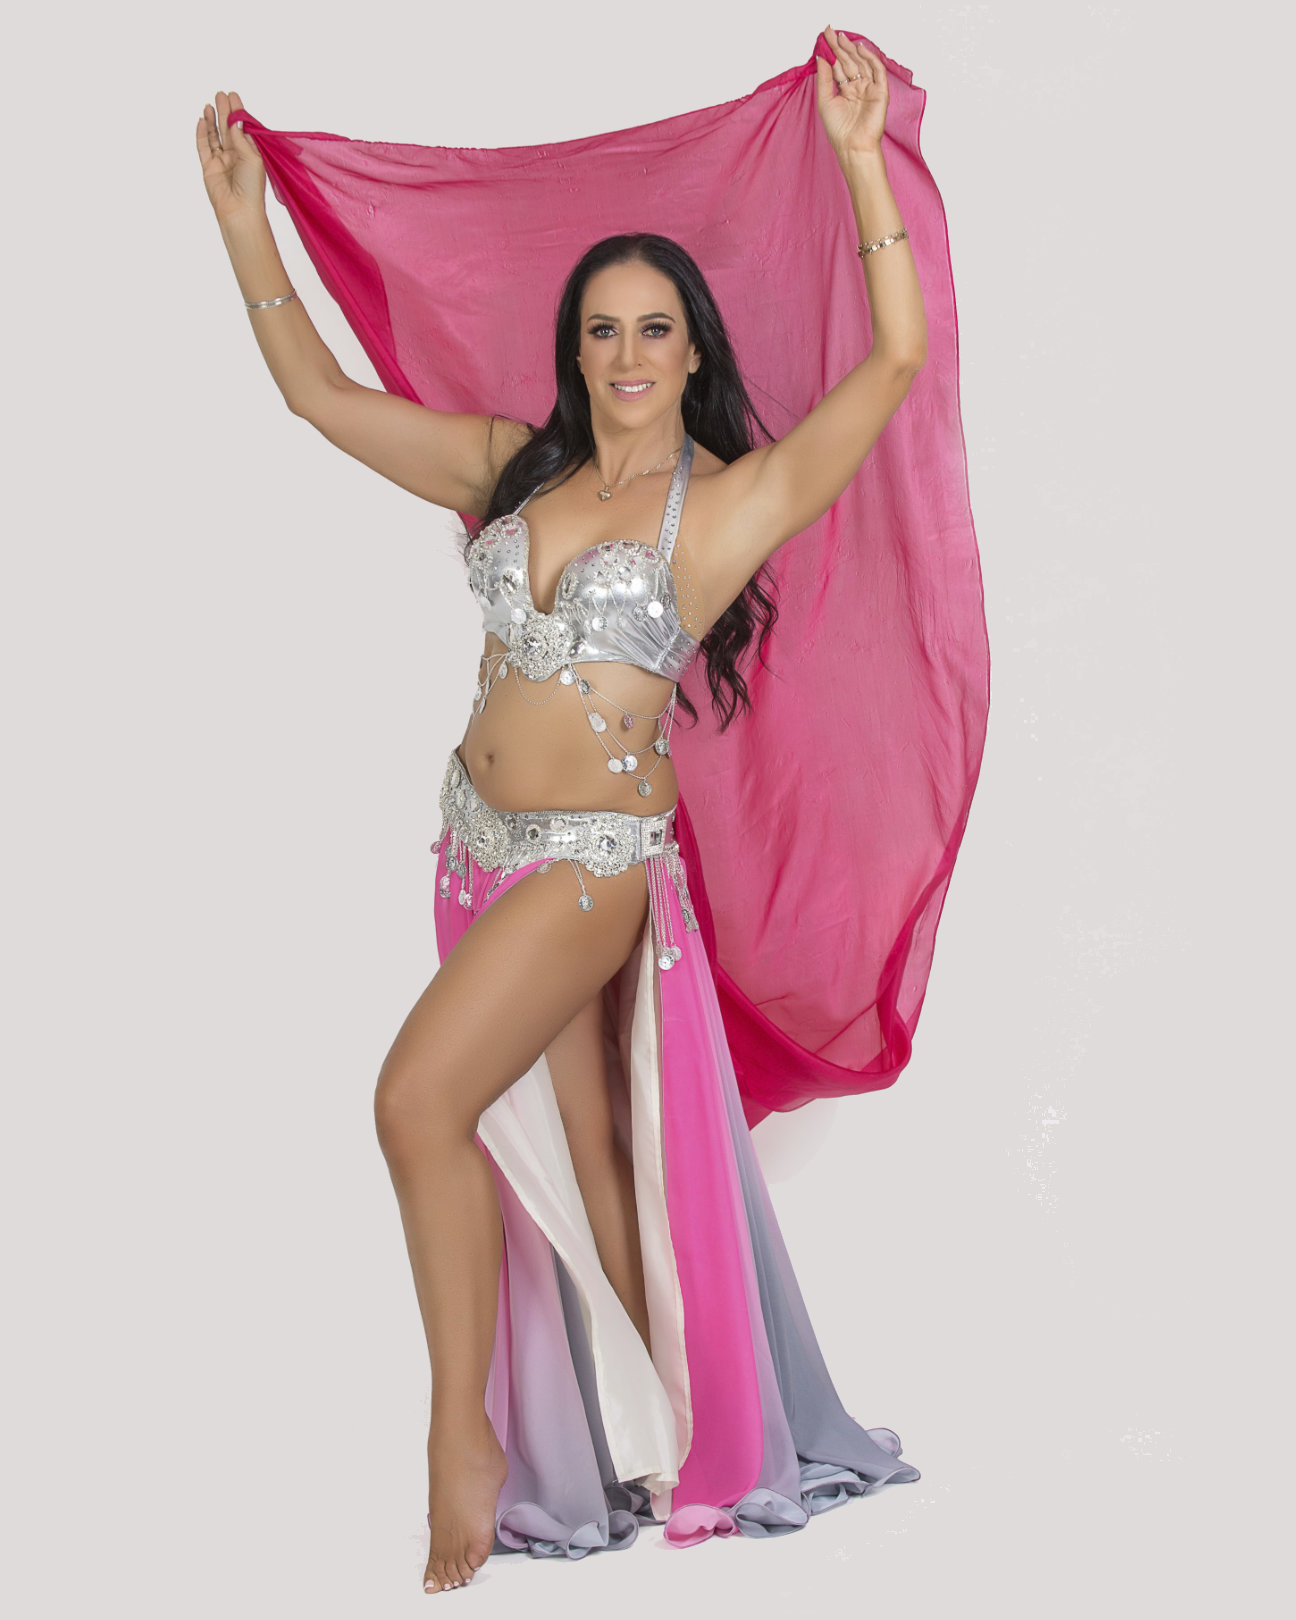 shira-belly-dancer Sheherazade Belly Dancing Photos